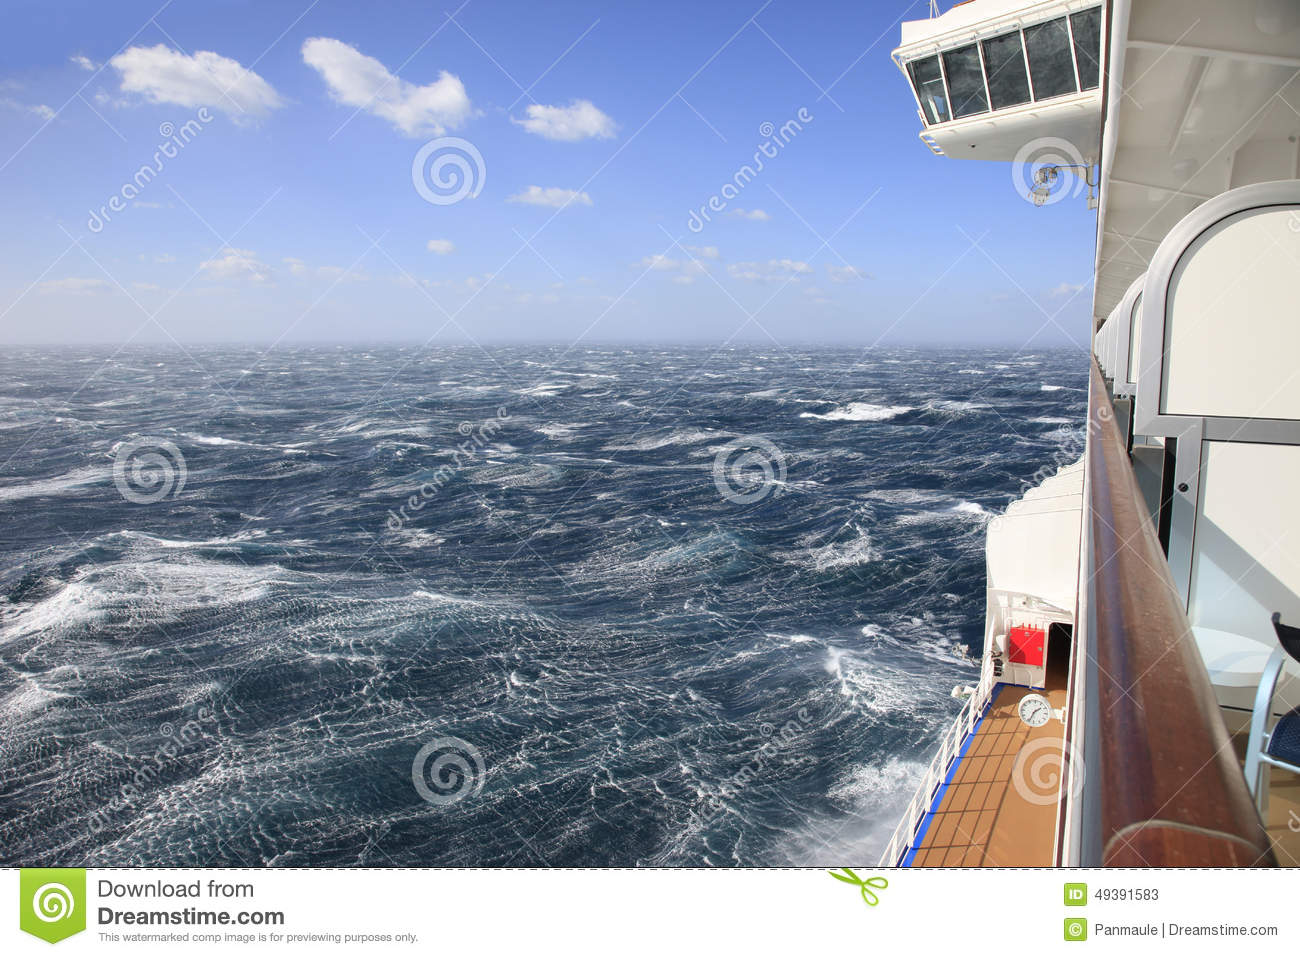 Cruise ship view from a balcony of rough seas and blue sky for Balcony in cruise ship